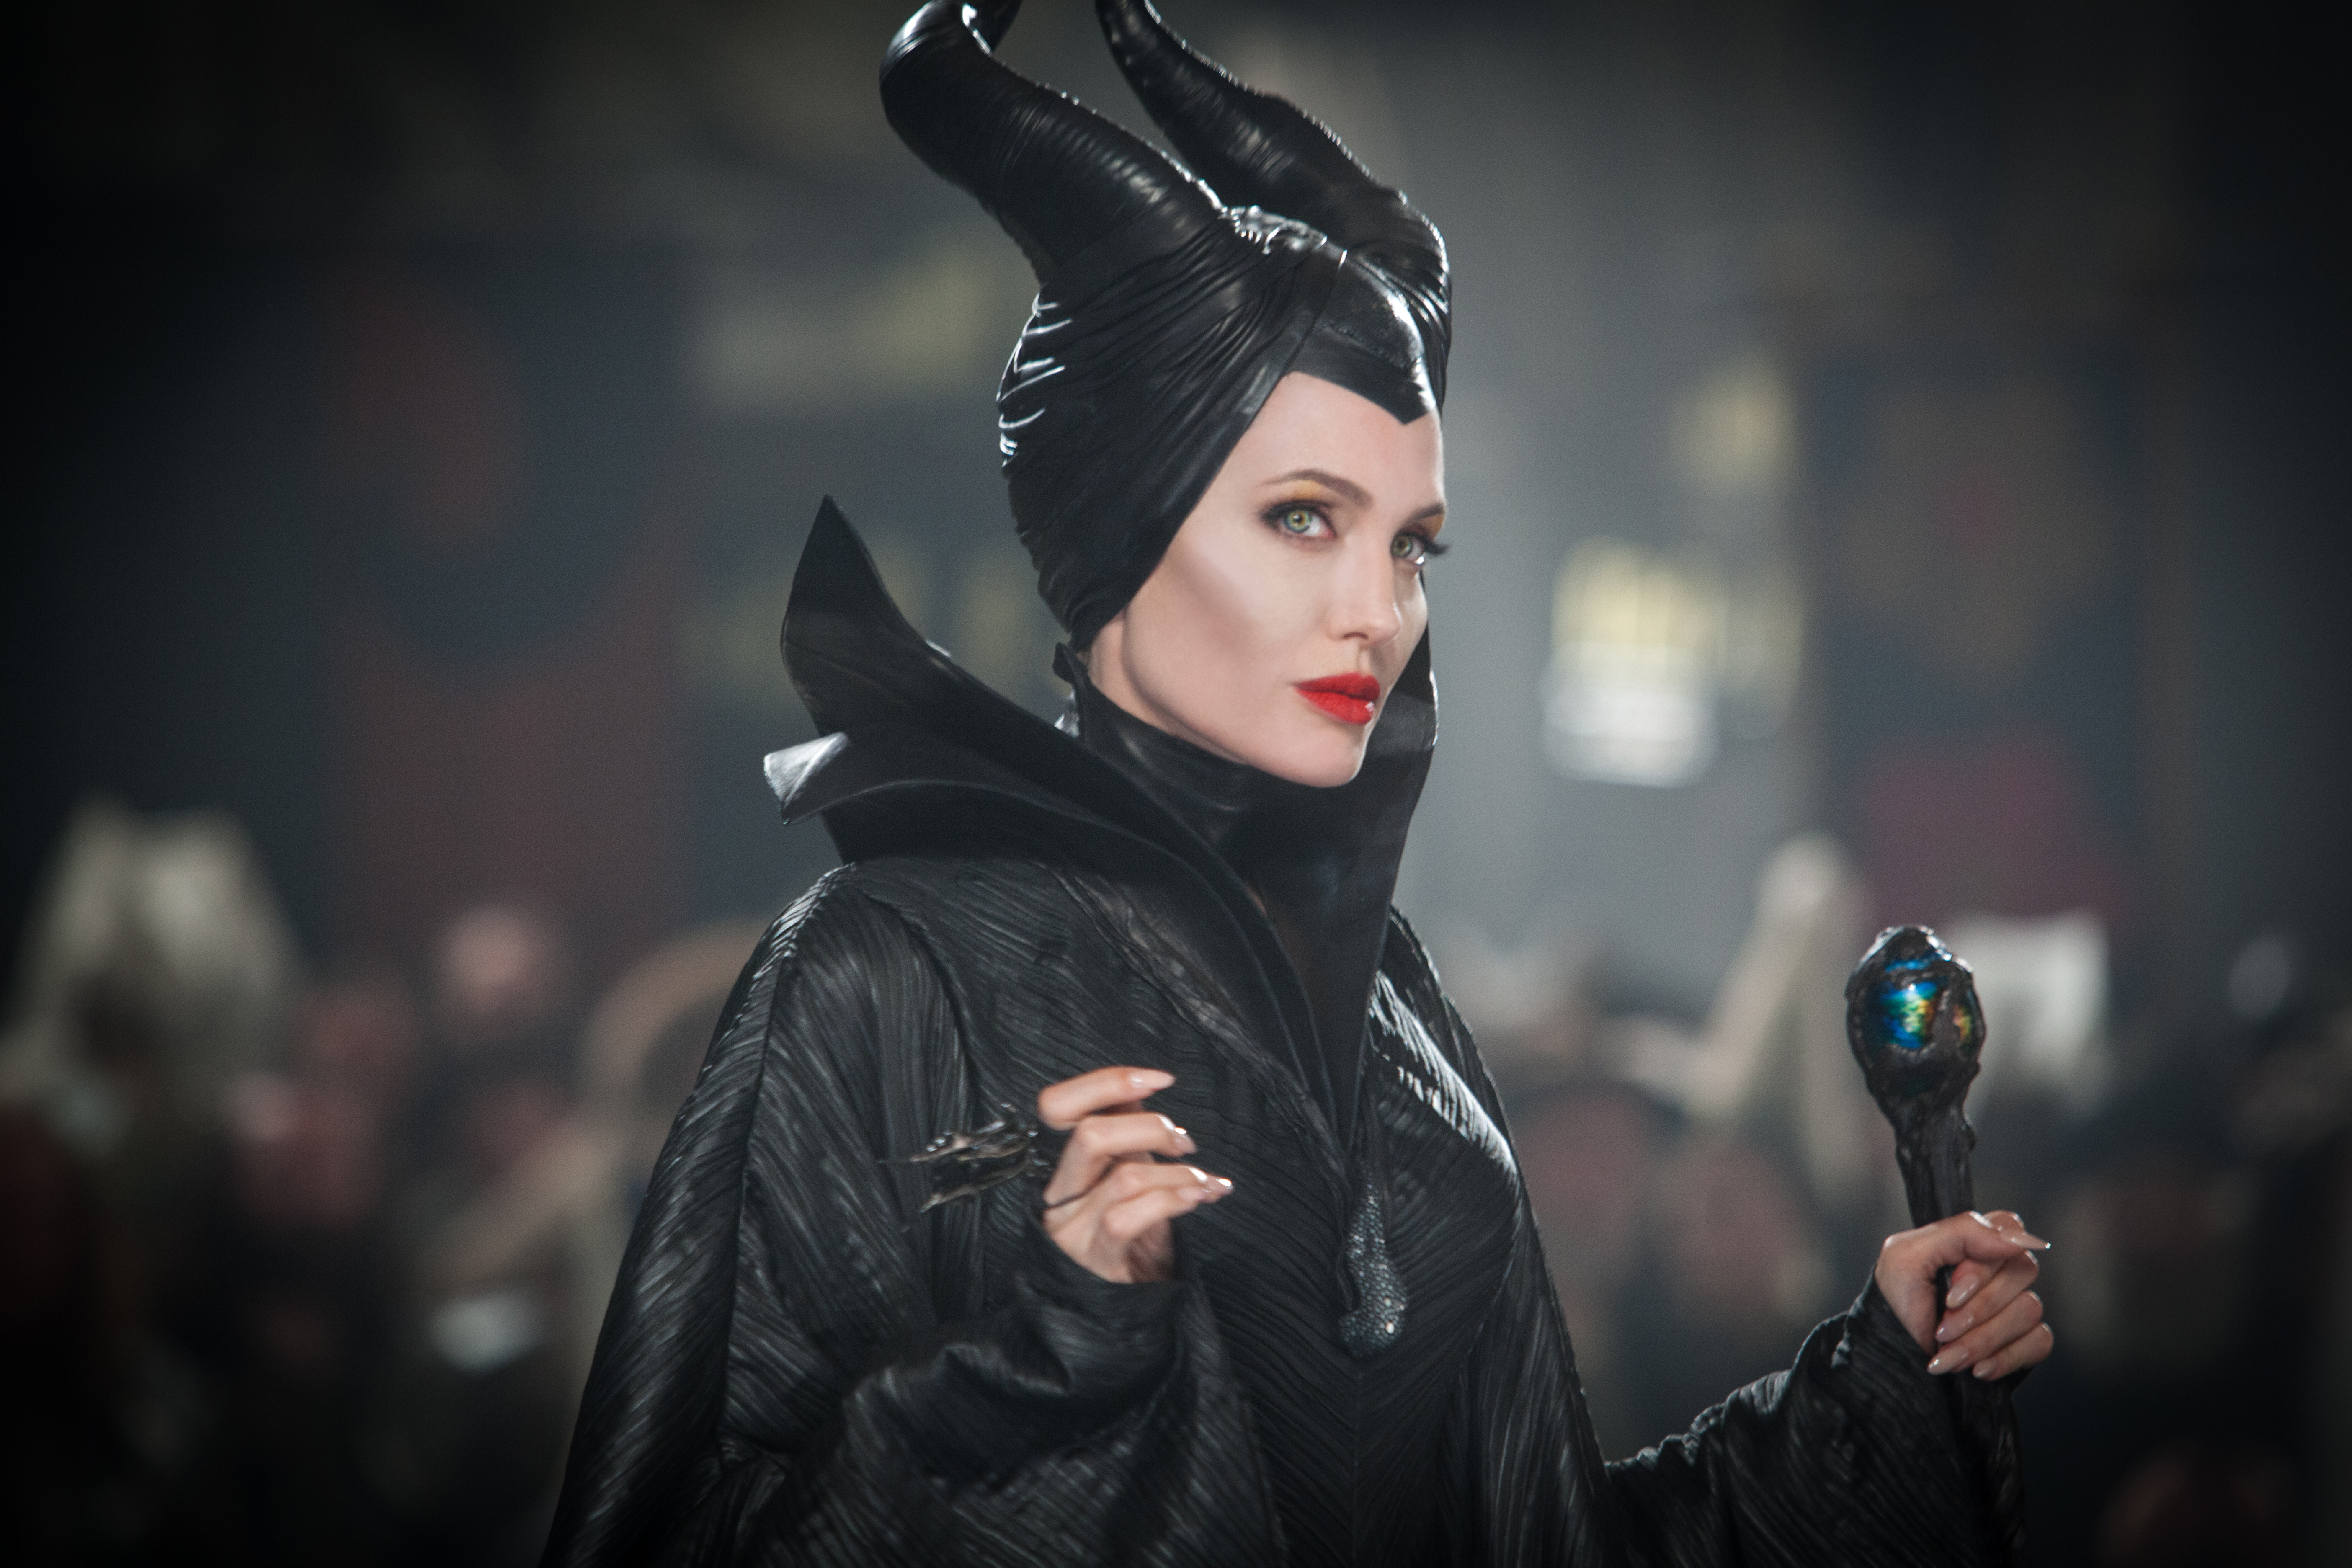 'Maleficent' vs. 'A Million Ways to Die in the West'